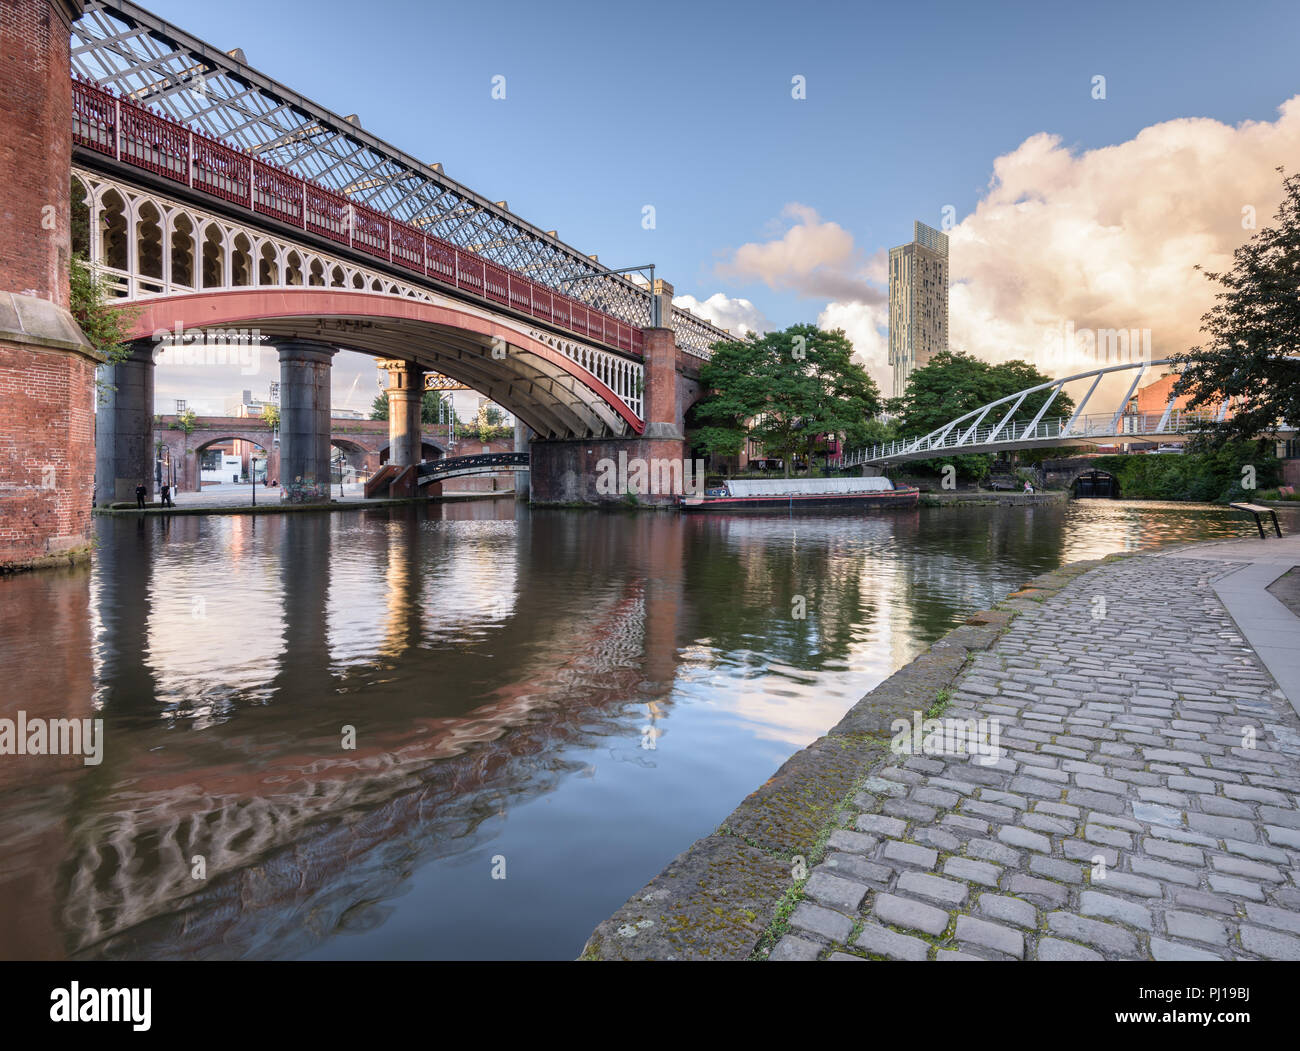 Early morning view from the tow path alongside Bridgewater Canal in Castlefield, Manchester, showing the MSJAR and Merchant's bridges and the Hilton Stock Photo